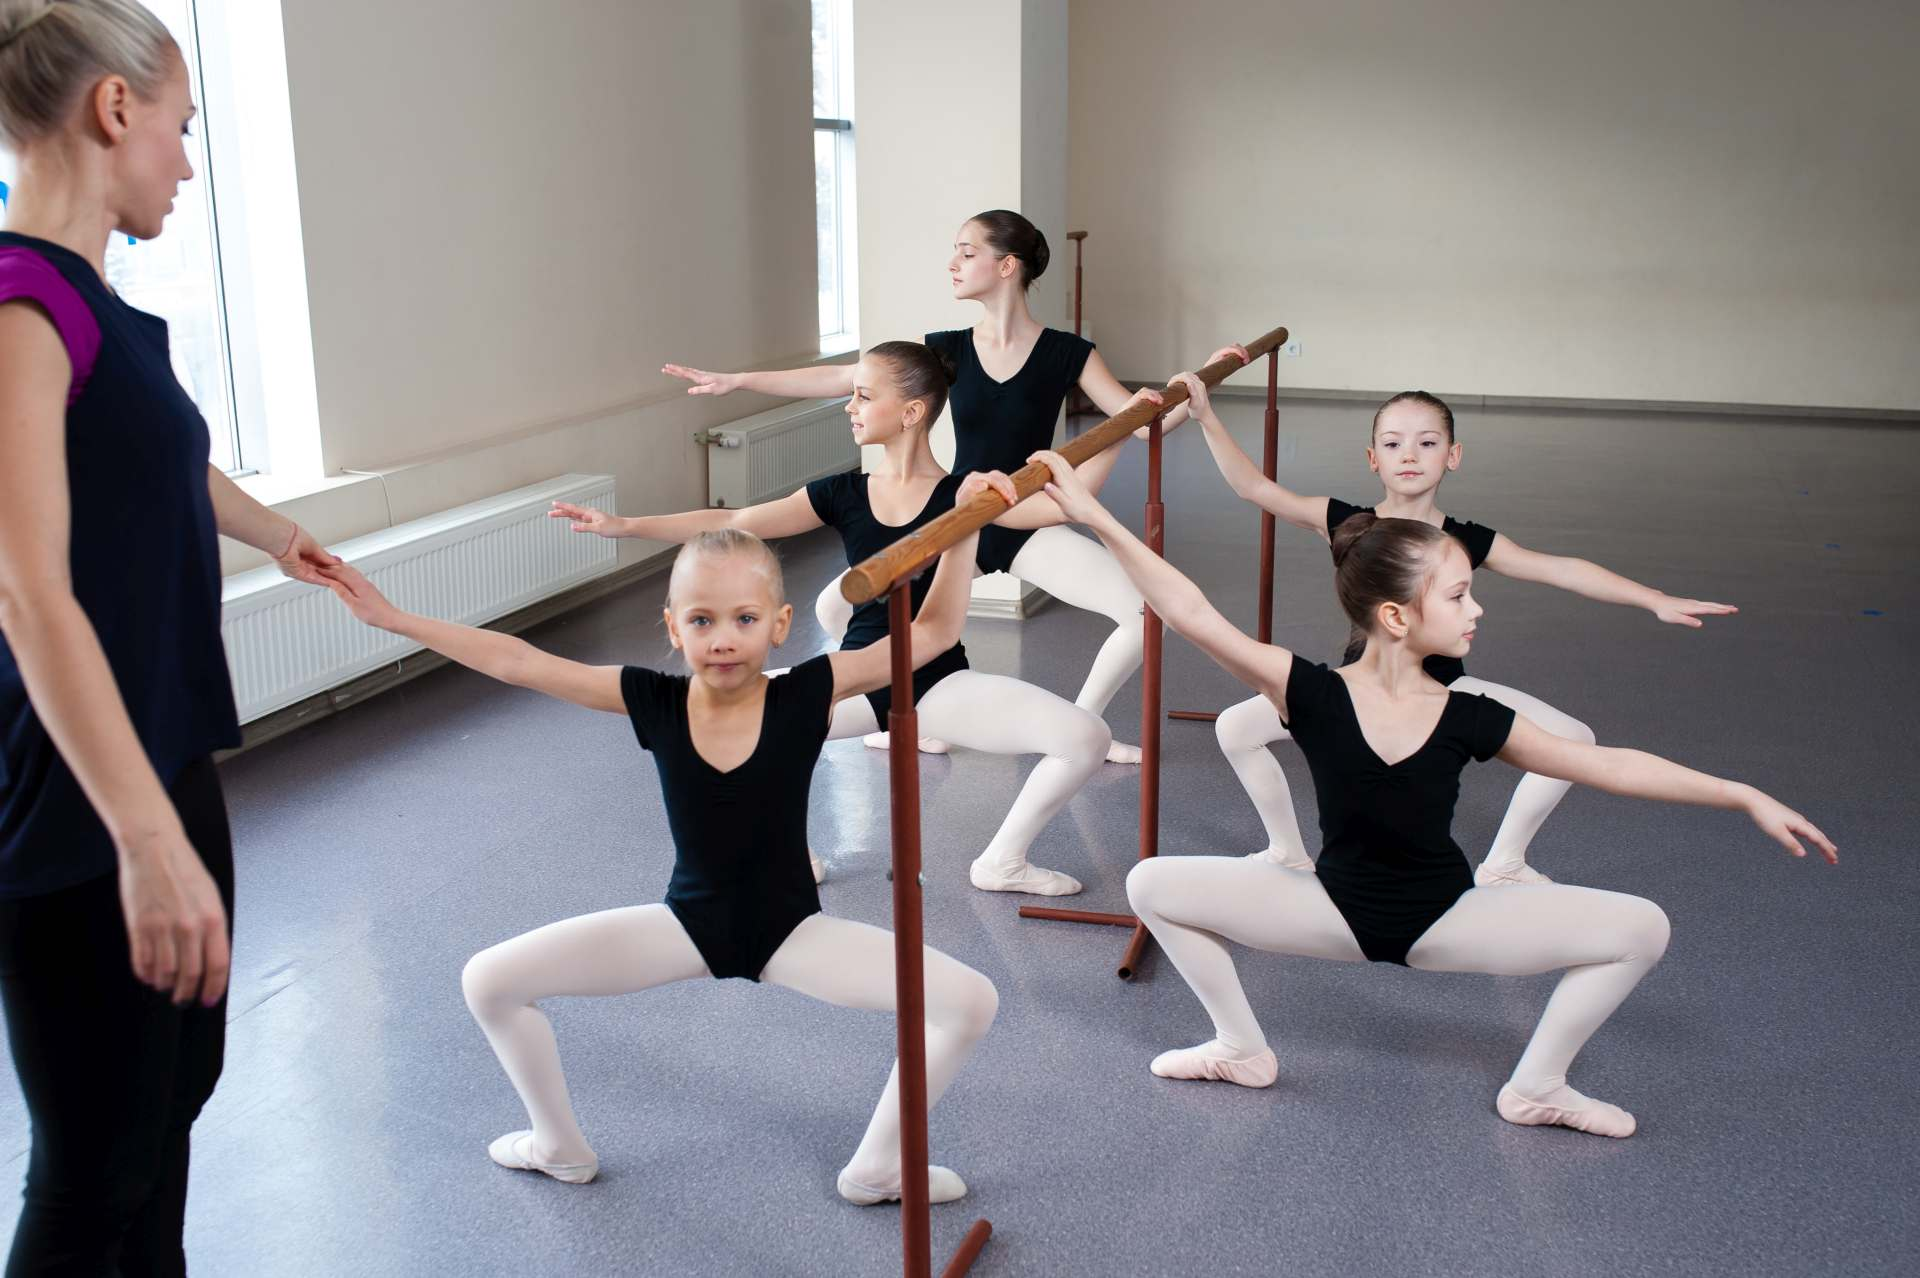 Children are taught ballet positions